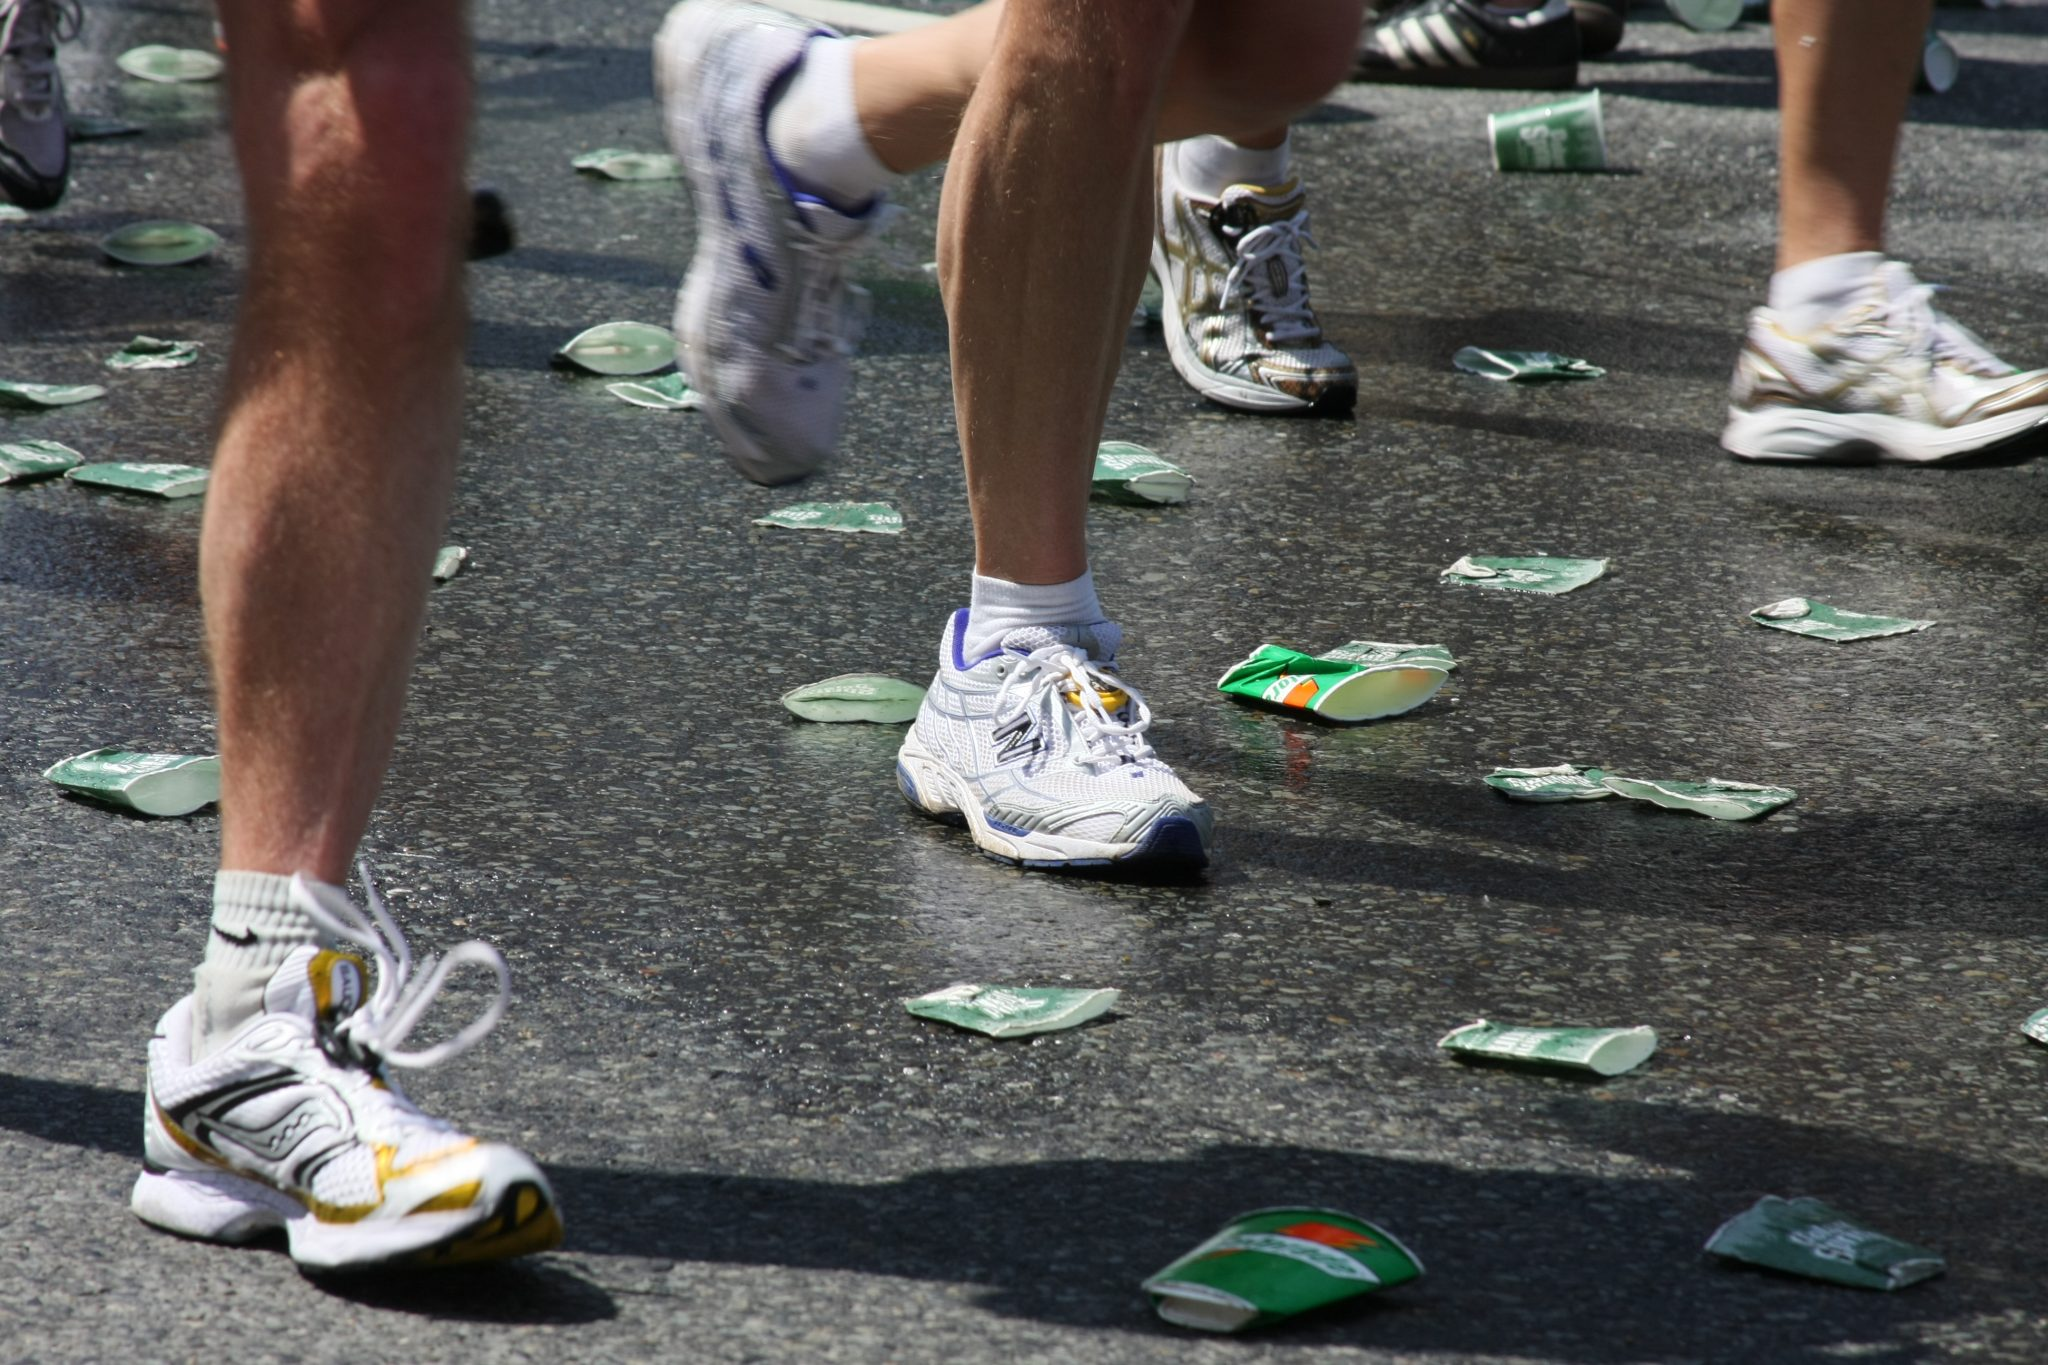 With EU Privacy Reform, the Marathon Is In Its Final Stretch